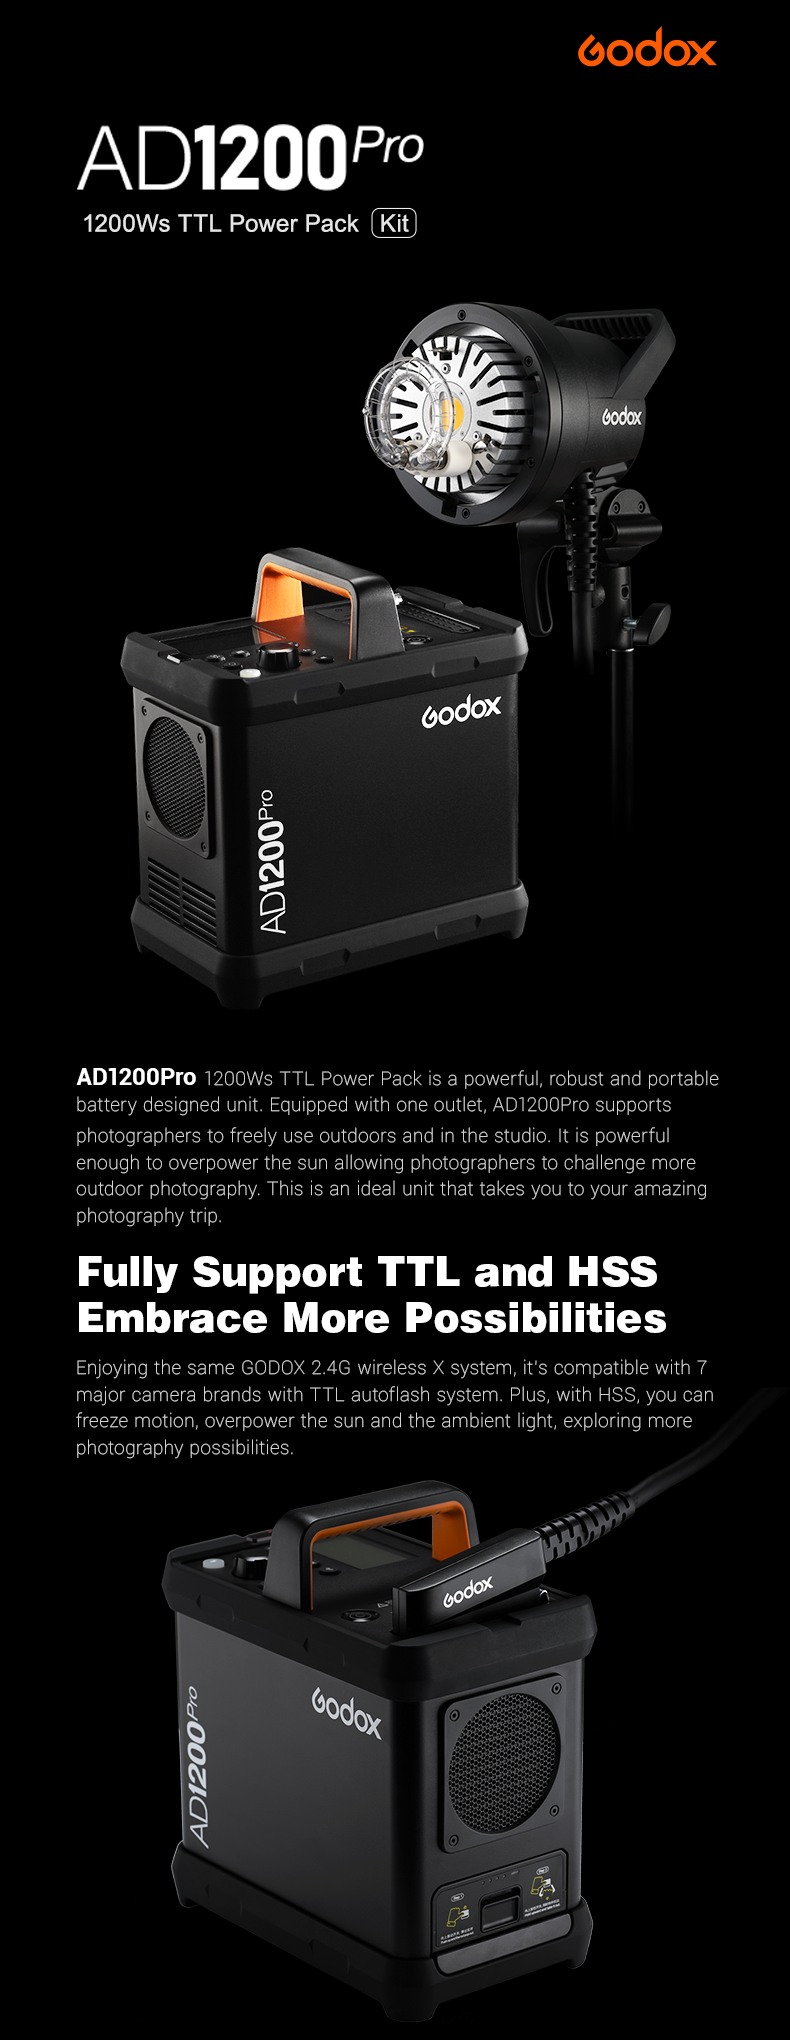 Godox AD1200Pro 1200Ws TTL Power Pack Kit. Fully Support TTL and HSS. Embrance More Possibilities. Battery Pack and flash light.